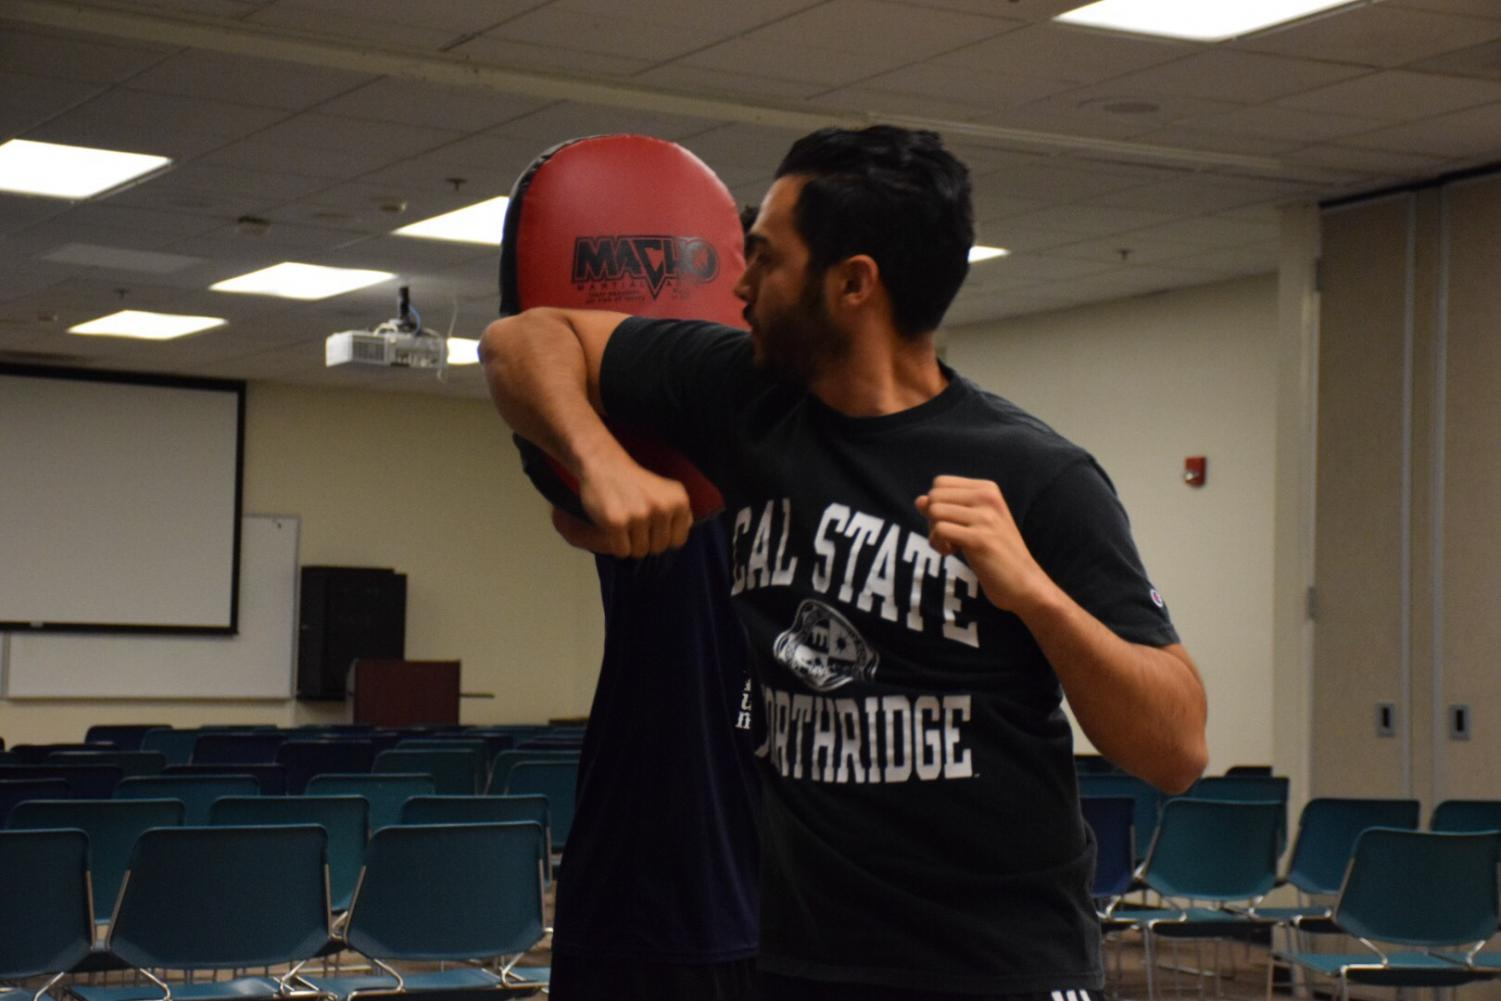 Edward Murillo, Enrollment Services staff, practices using his elbow as a body weapon to protect oneself during an attack from behind during the personal safety and awareness training Oct. 25.